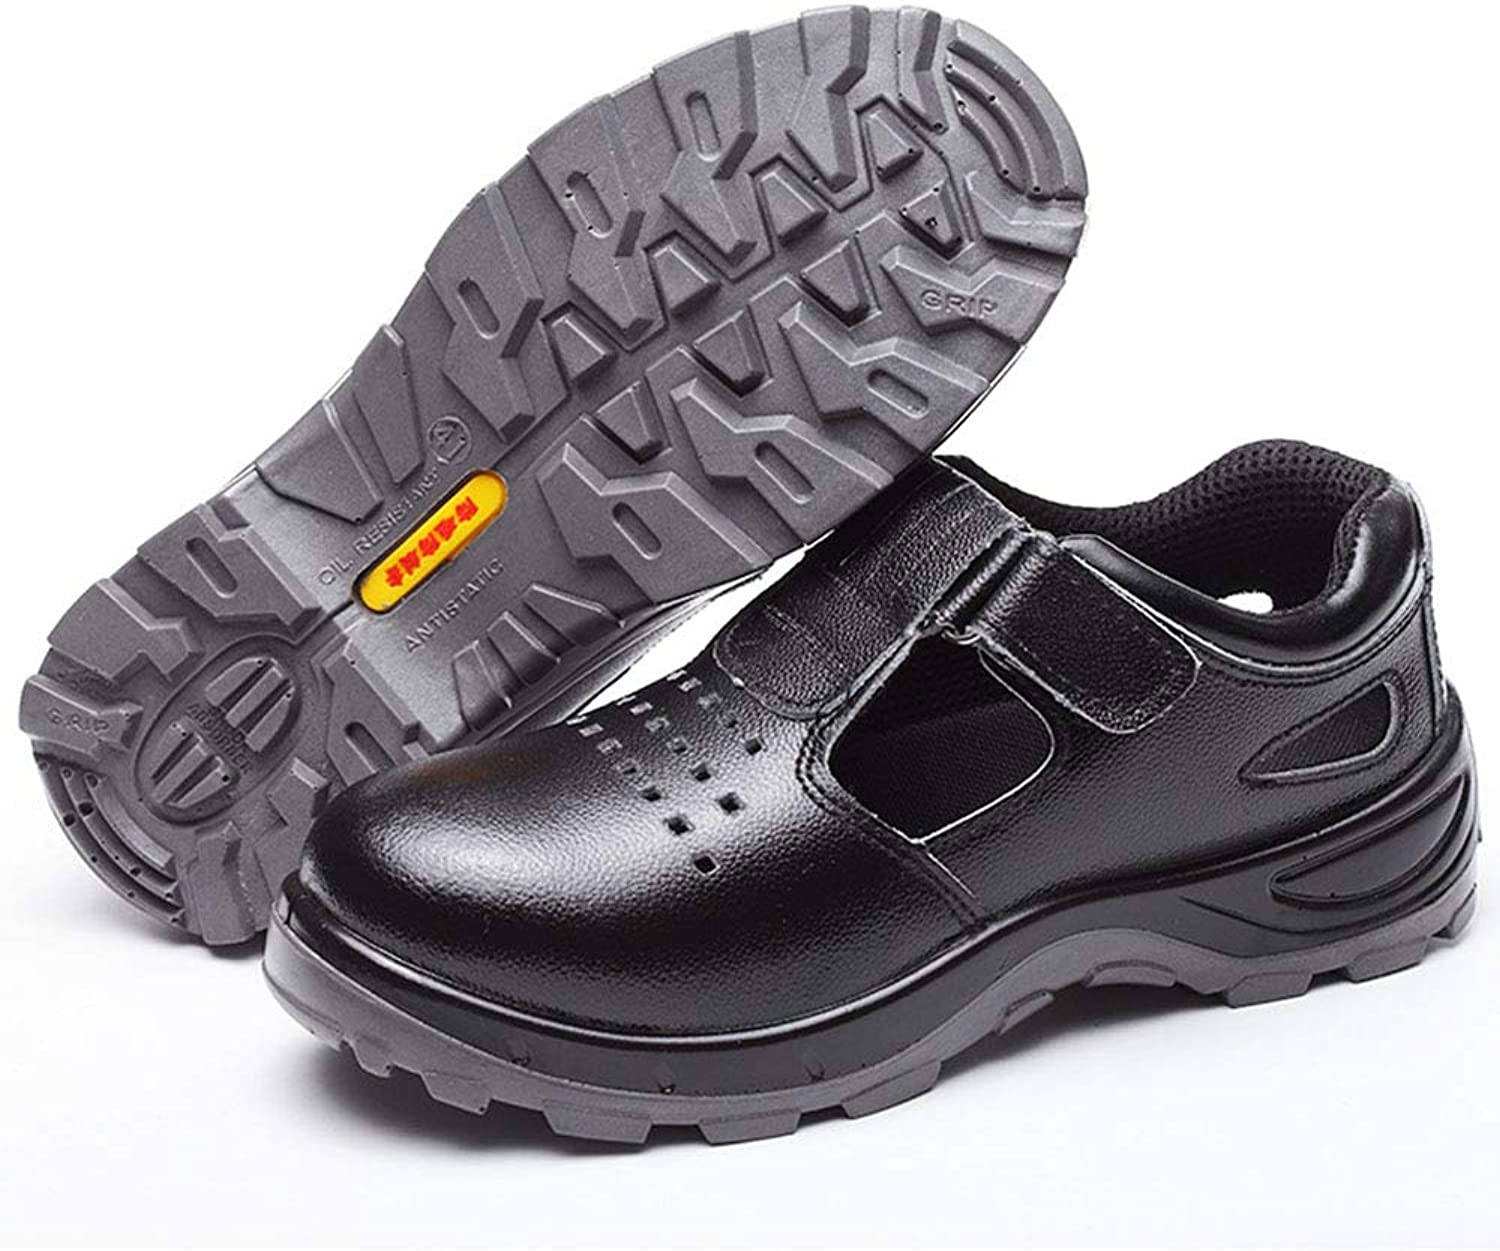 shoes Breathable safety work sandals, steel toe cap summer puncture predective tooling, non-slip wear-resistant hiking, suitable for construction sites, welding ZDDAB